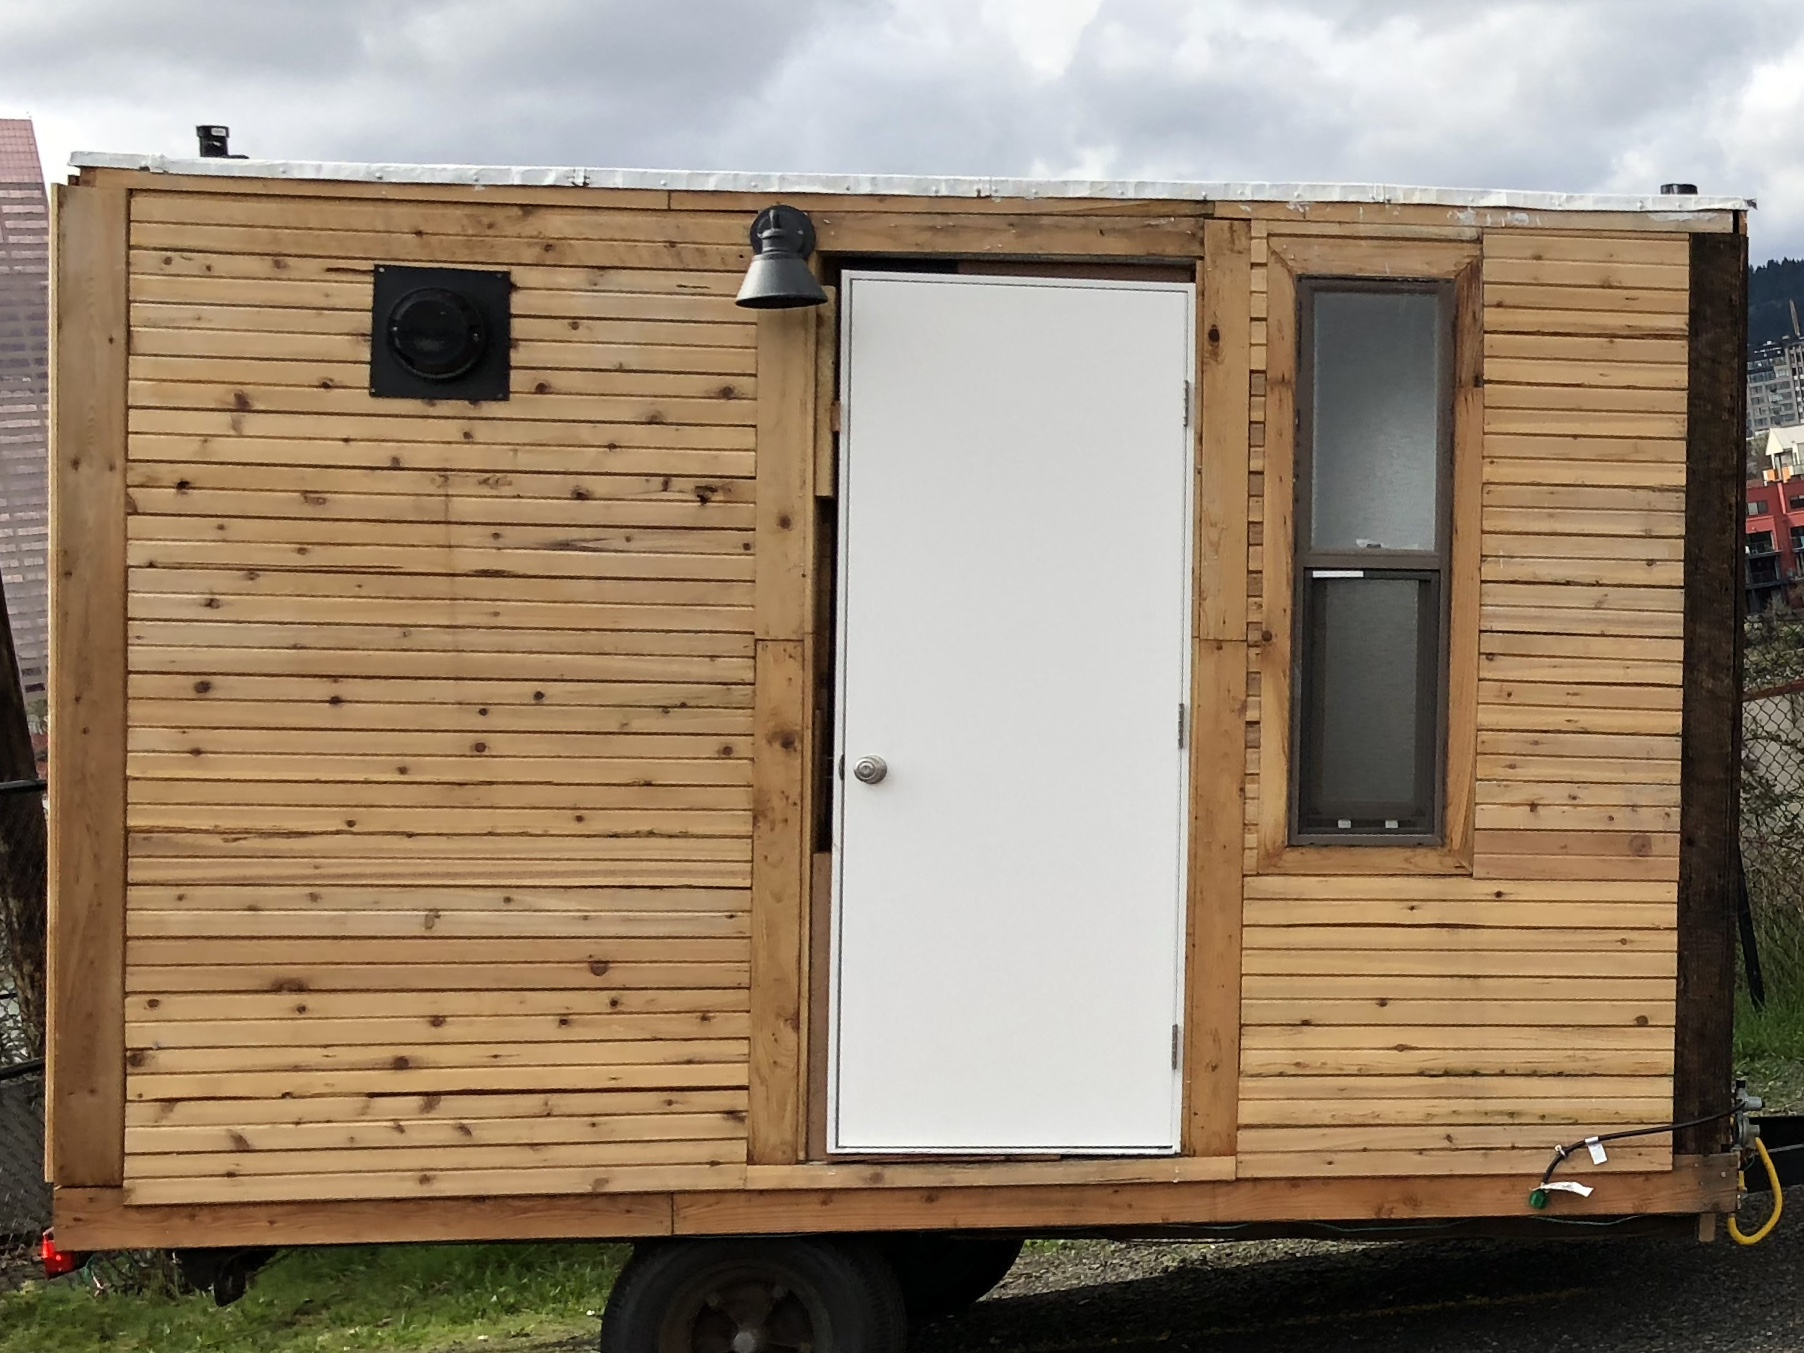 ShowerPod & WashPod - Eco-Friendly Mobile Hygiene Facilities For Houseless Villages